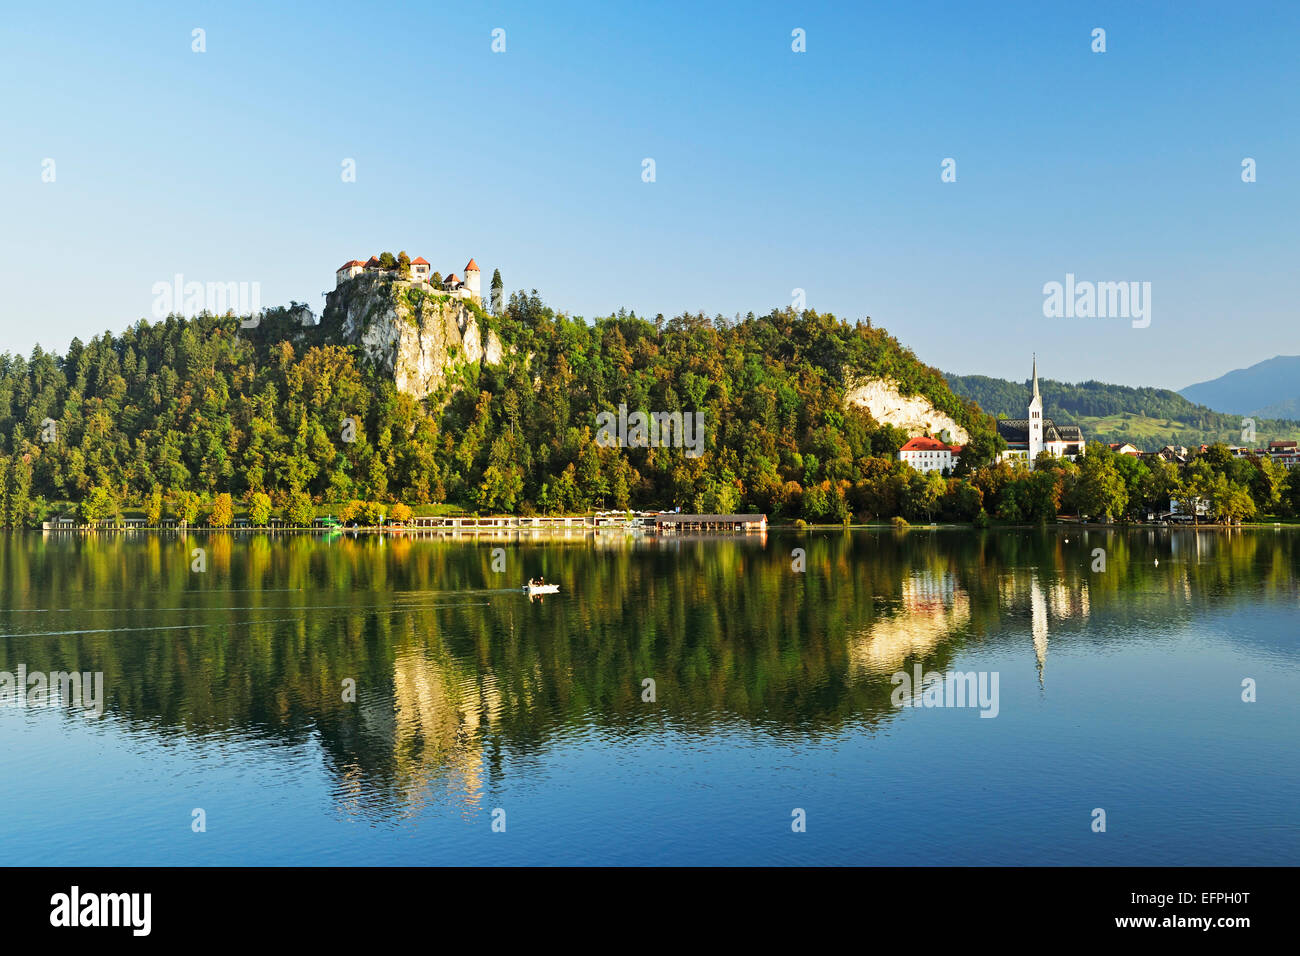 Bled castle, Lake Bled (Blejsko jezero), Bled, Julian Alps, Slovenia, Europe Stock Photo